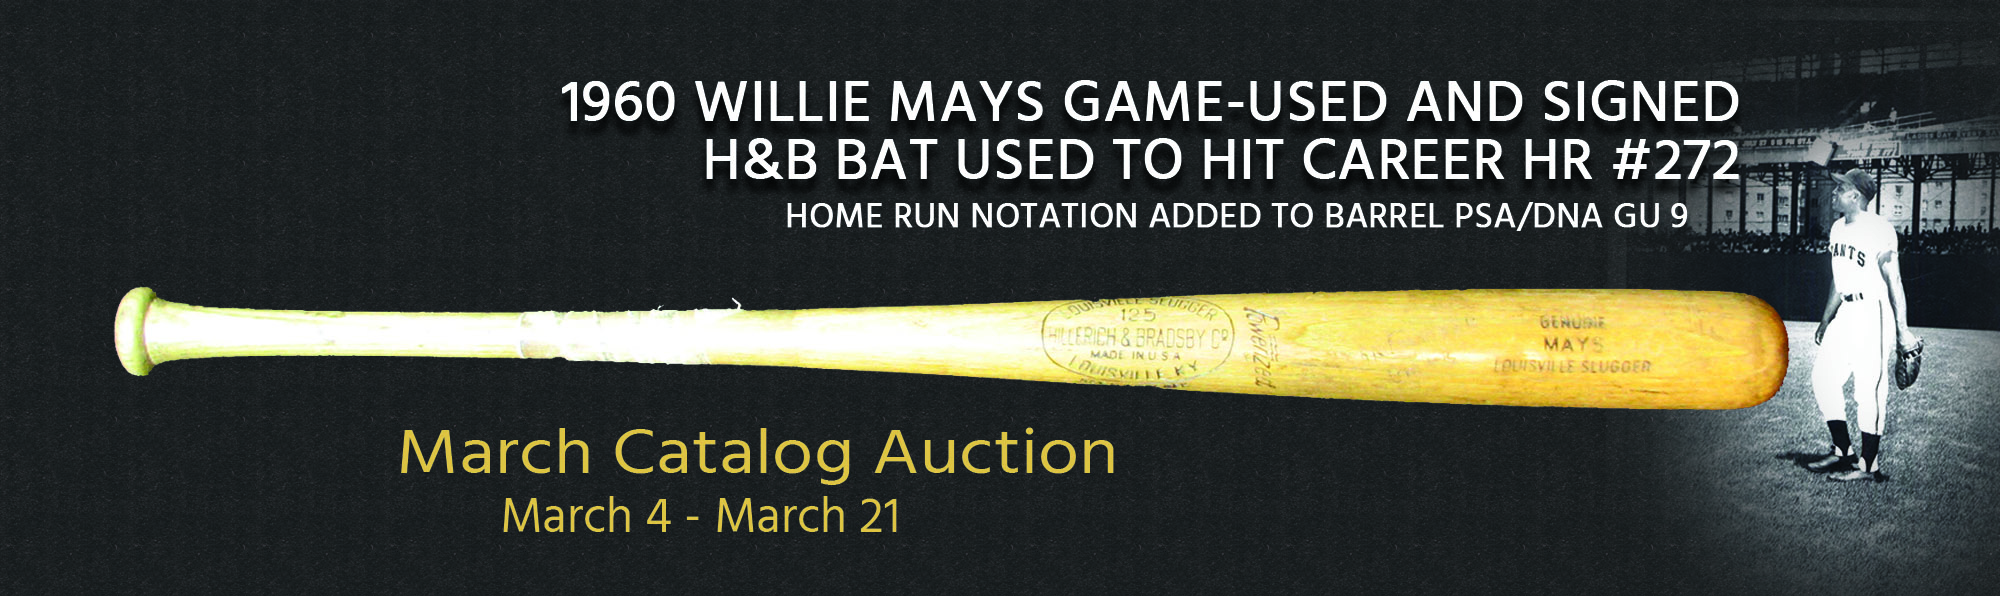 1960 Willie Mays Game-Used and Signed H&B Bat Used to Hit Career HR #272